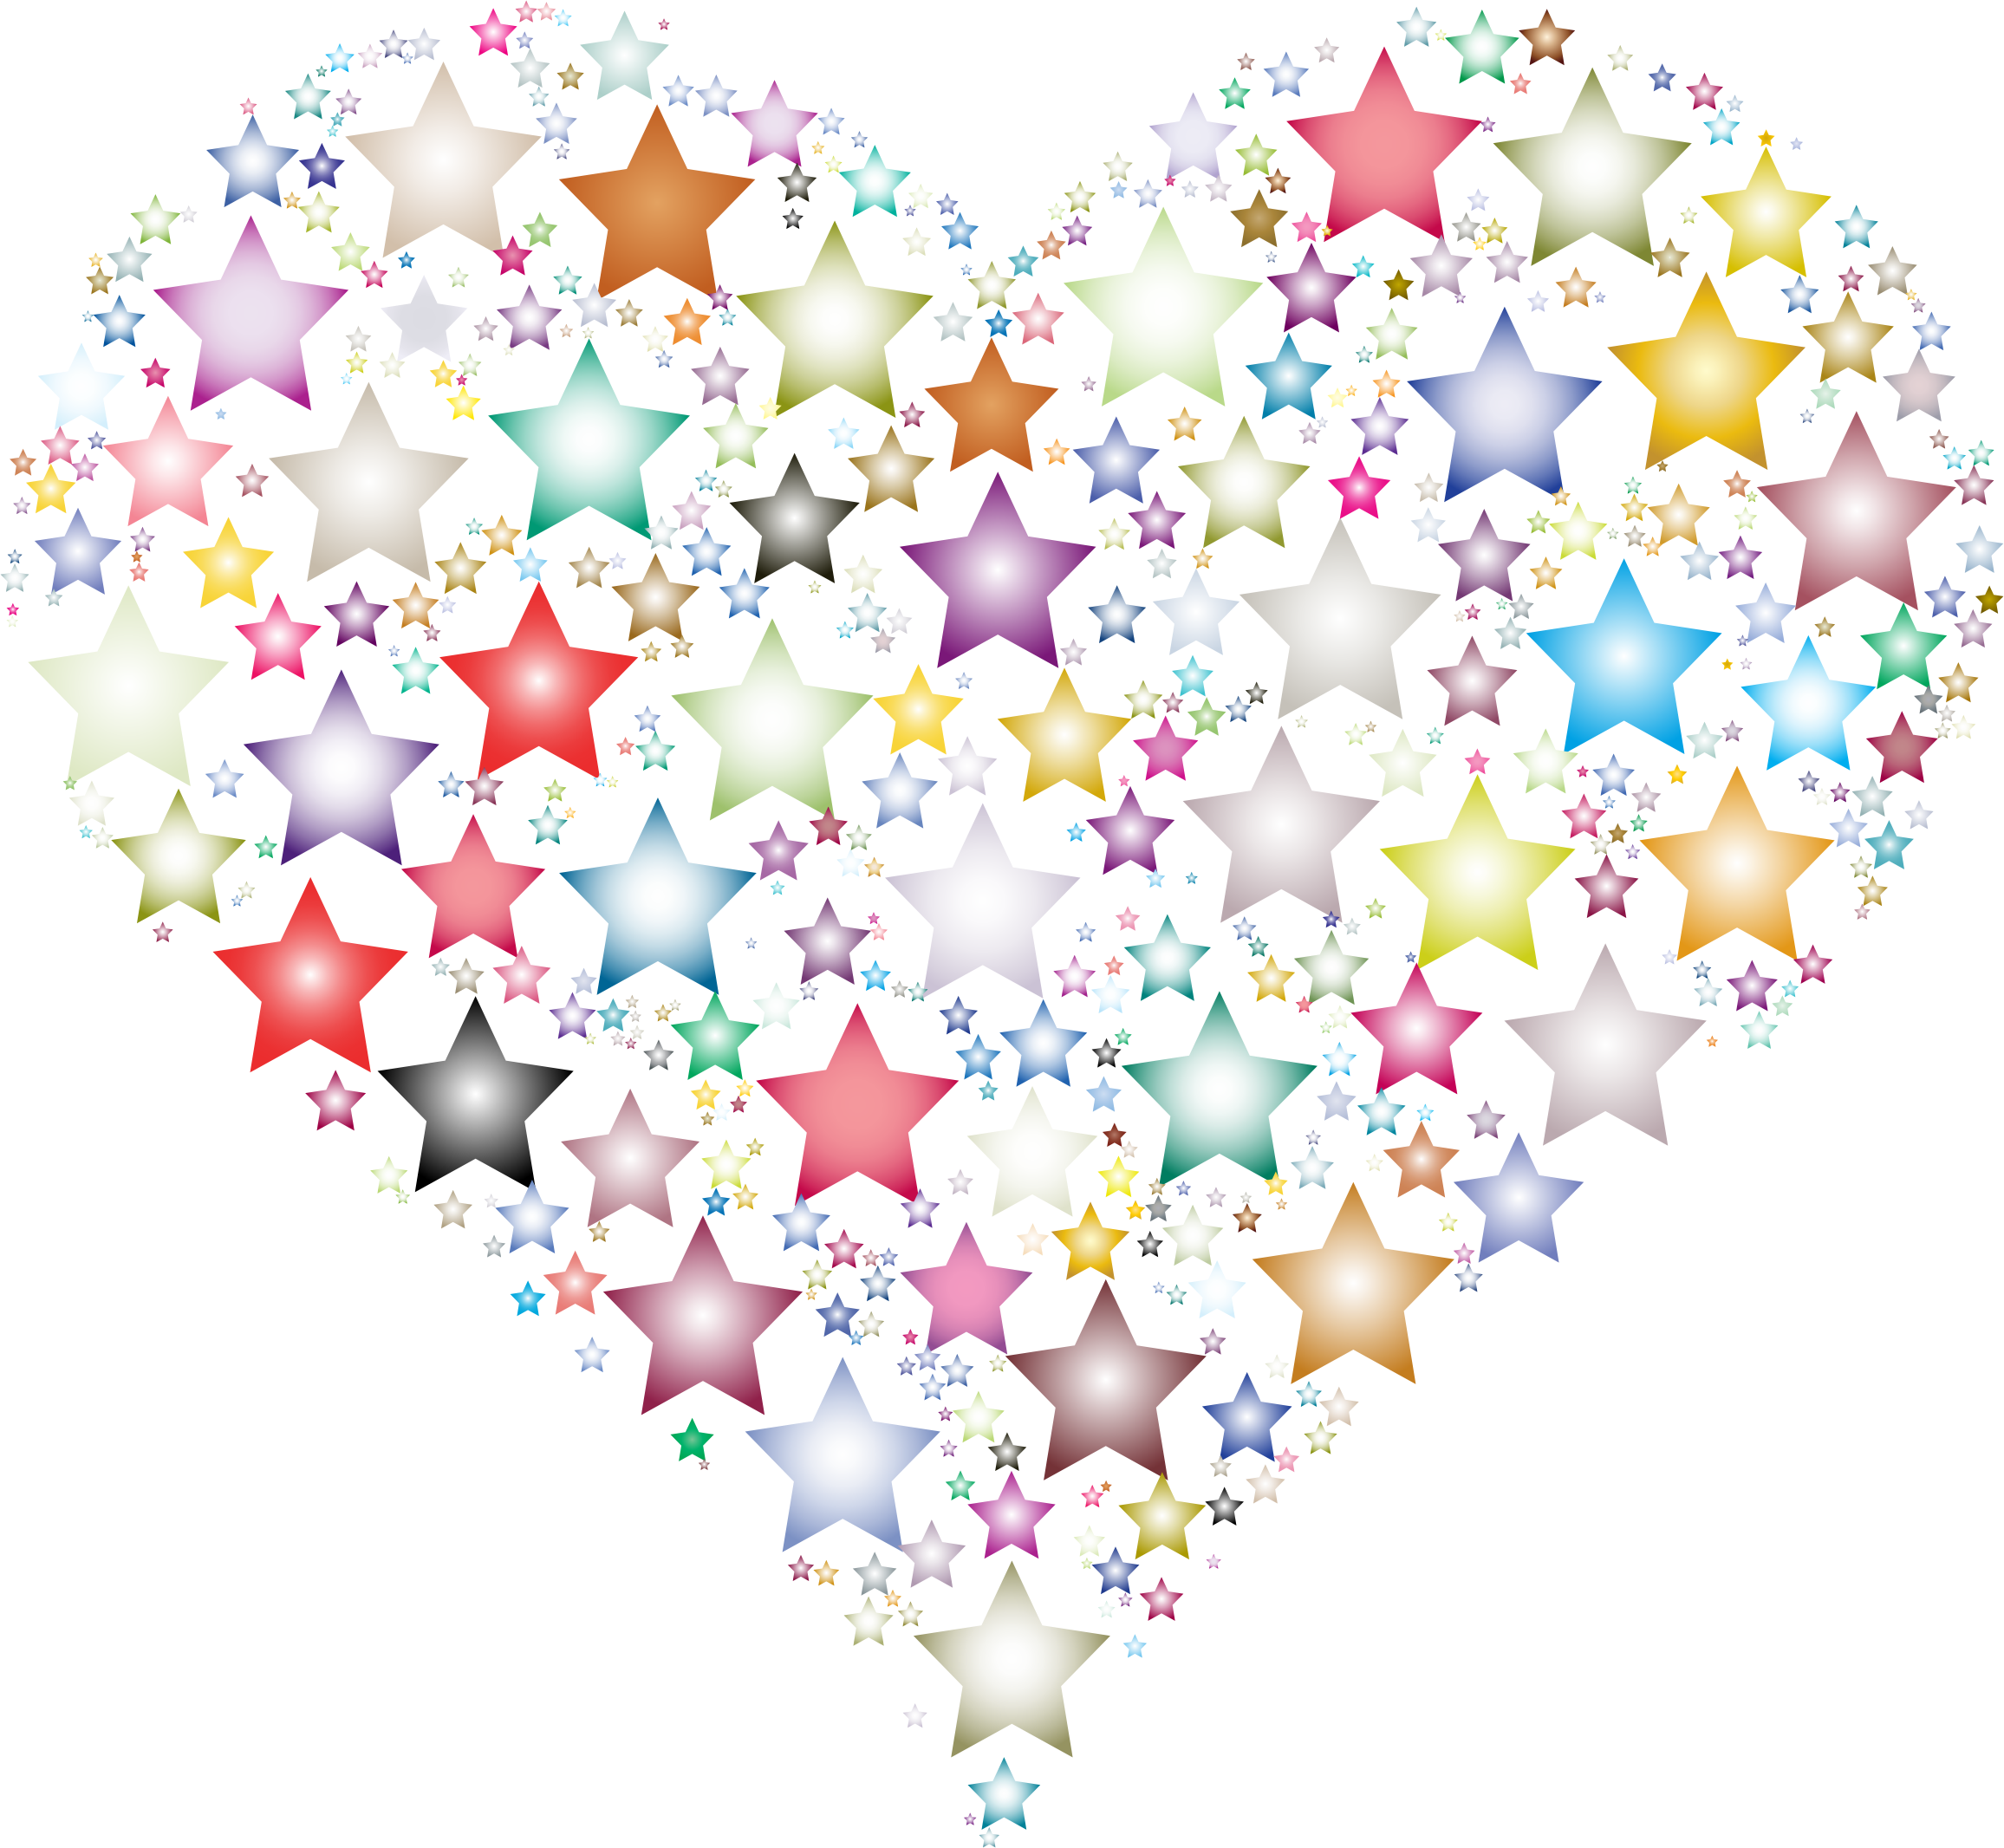 Colorful Heart Stars 3 by GDJ